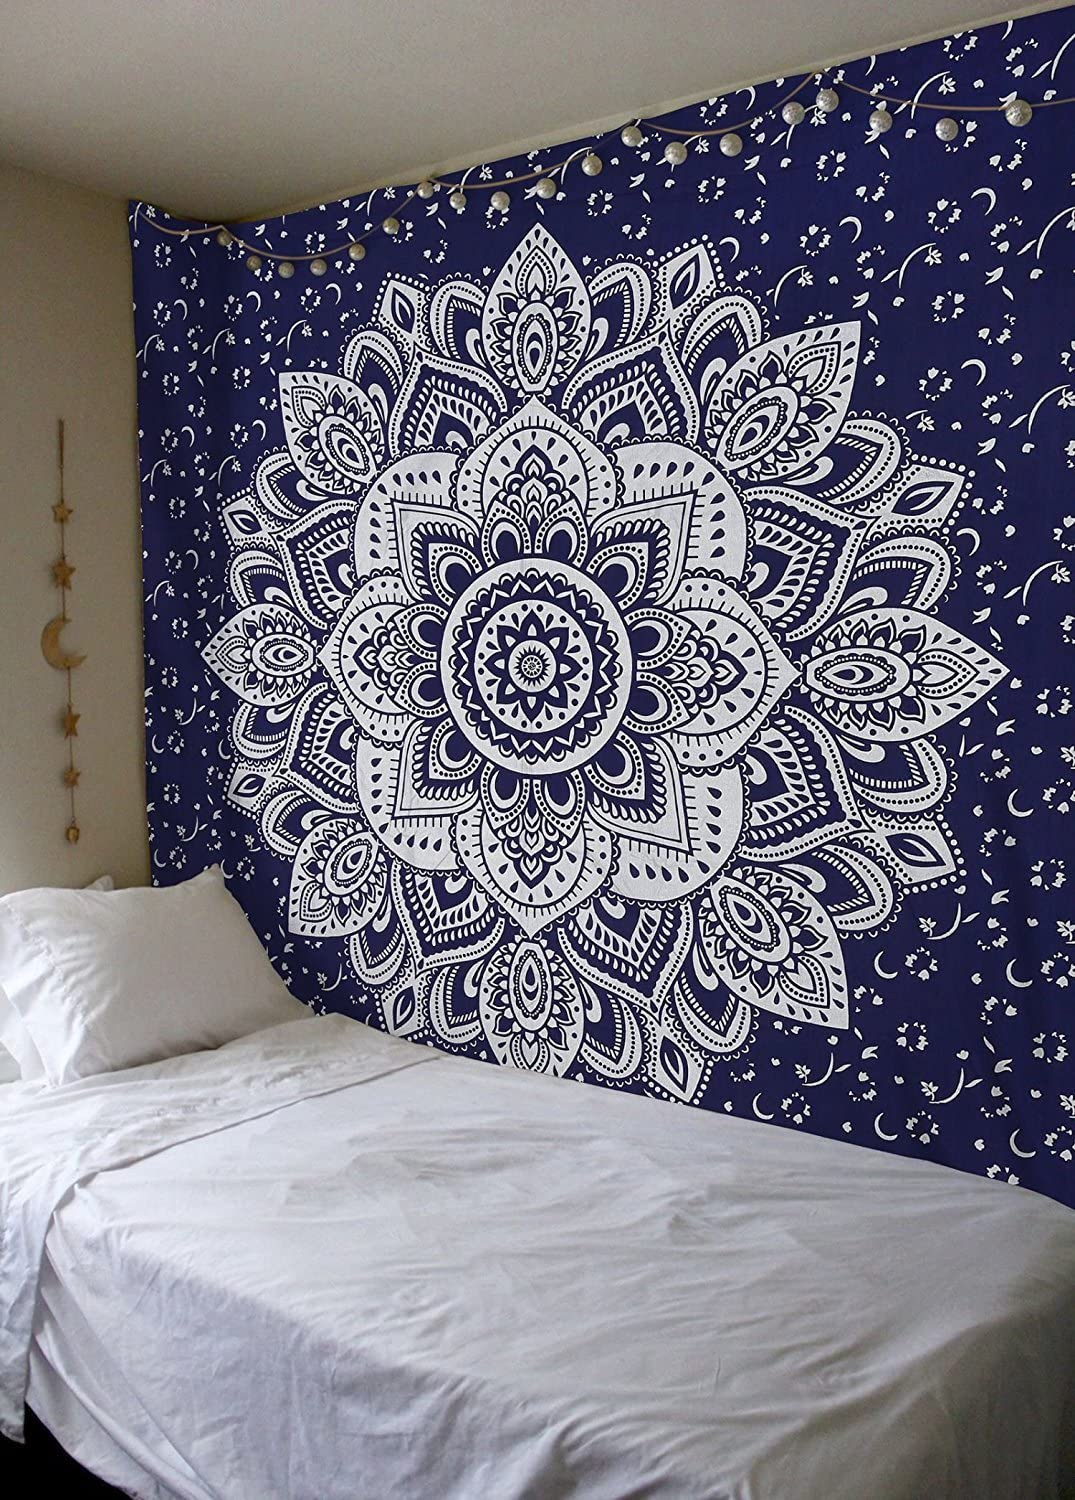 Popular Handicrafts Kp902 Passion Ombre Silver Tapestry Wall Hanging Indian Mandala Hippie Tapestries, Boho Dorm Décor Tapestry, Bohemian Bedspread 84 x 90 Inches Blue